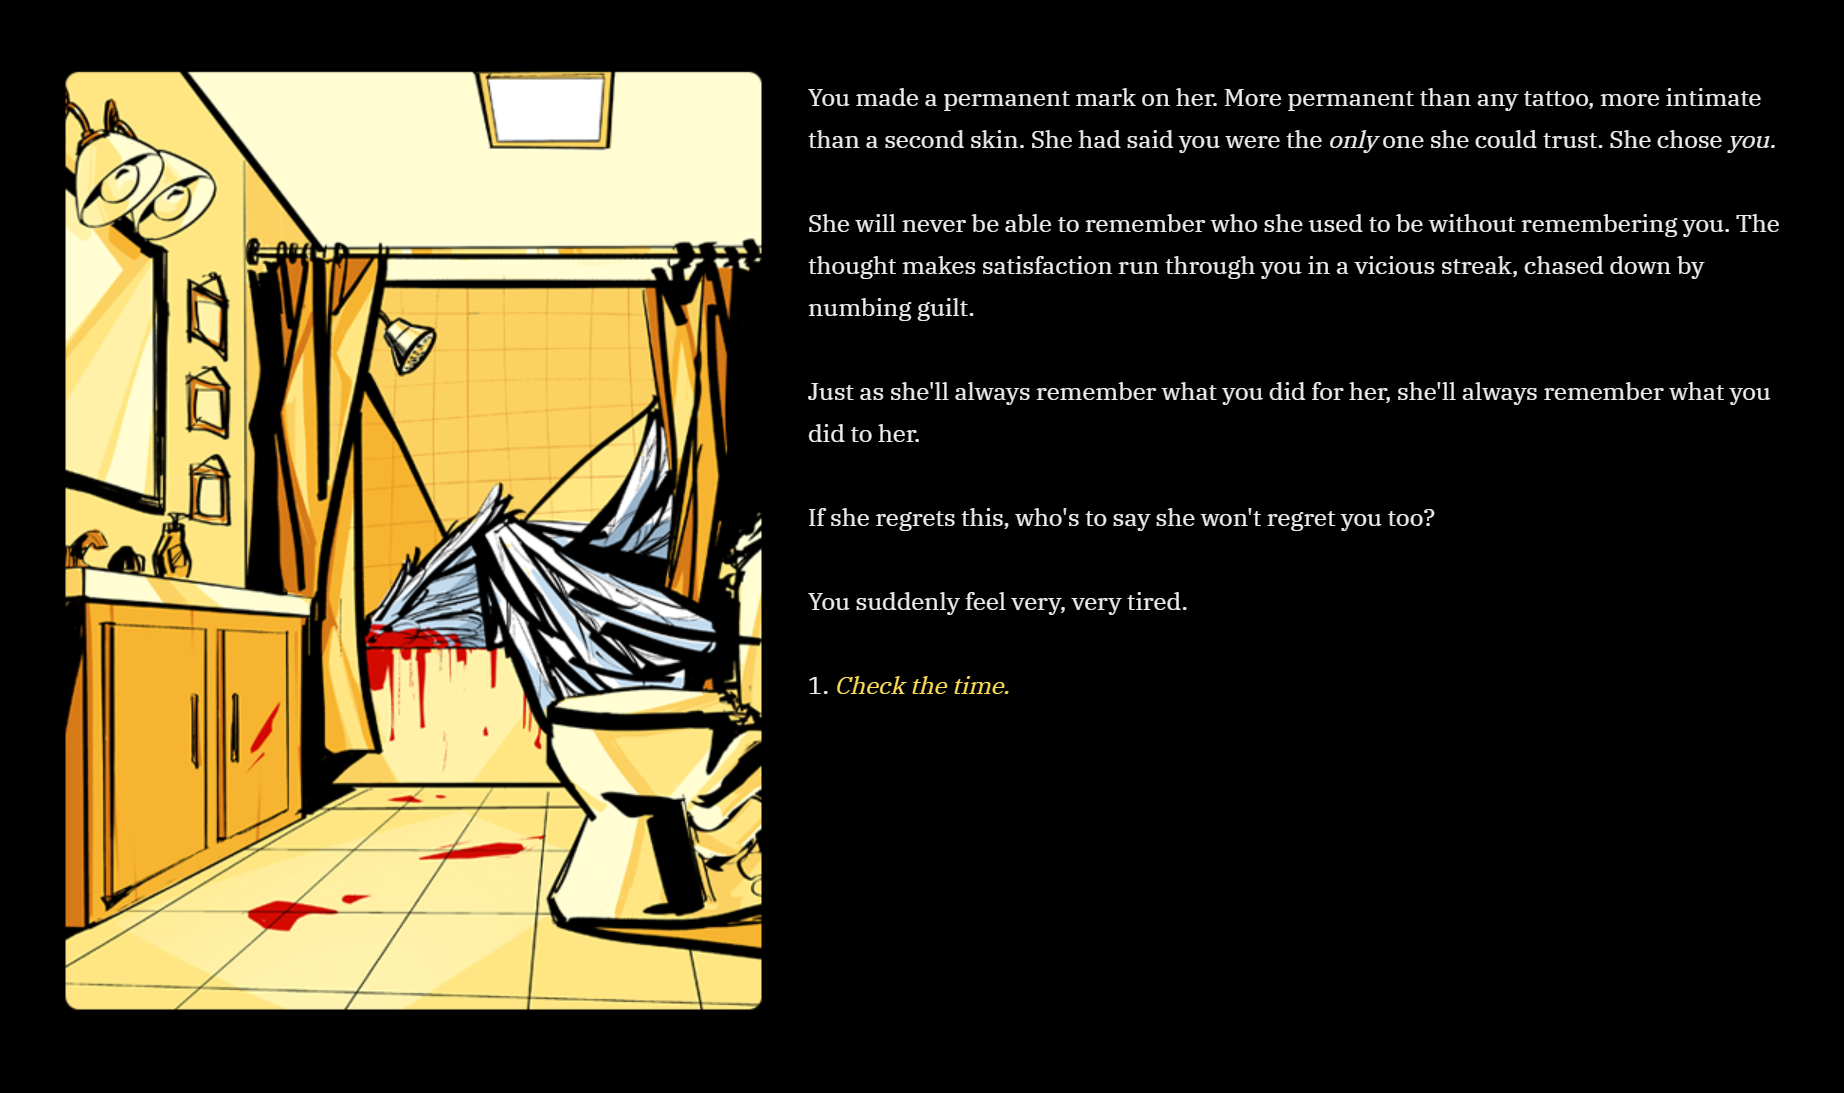 A screenshot of an interactive fiction game, CUT THEM OFF. In-game illustration featured is a yellow bathroom with two large severed wings in the bathtub, a trail of blood on the floor.